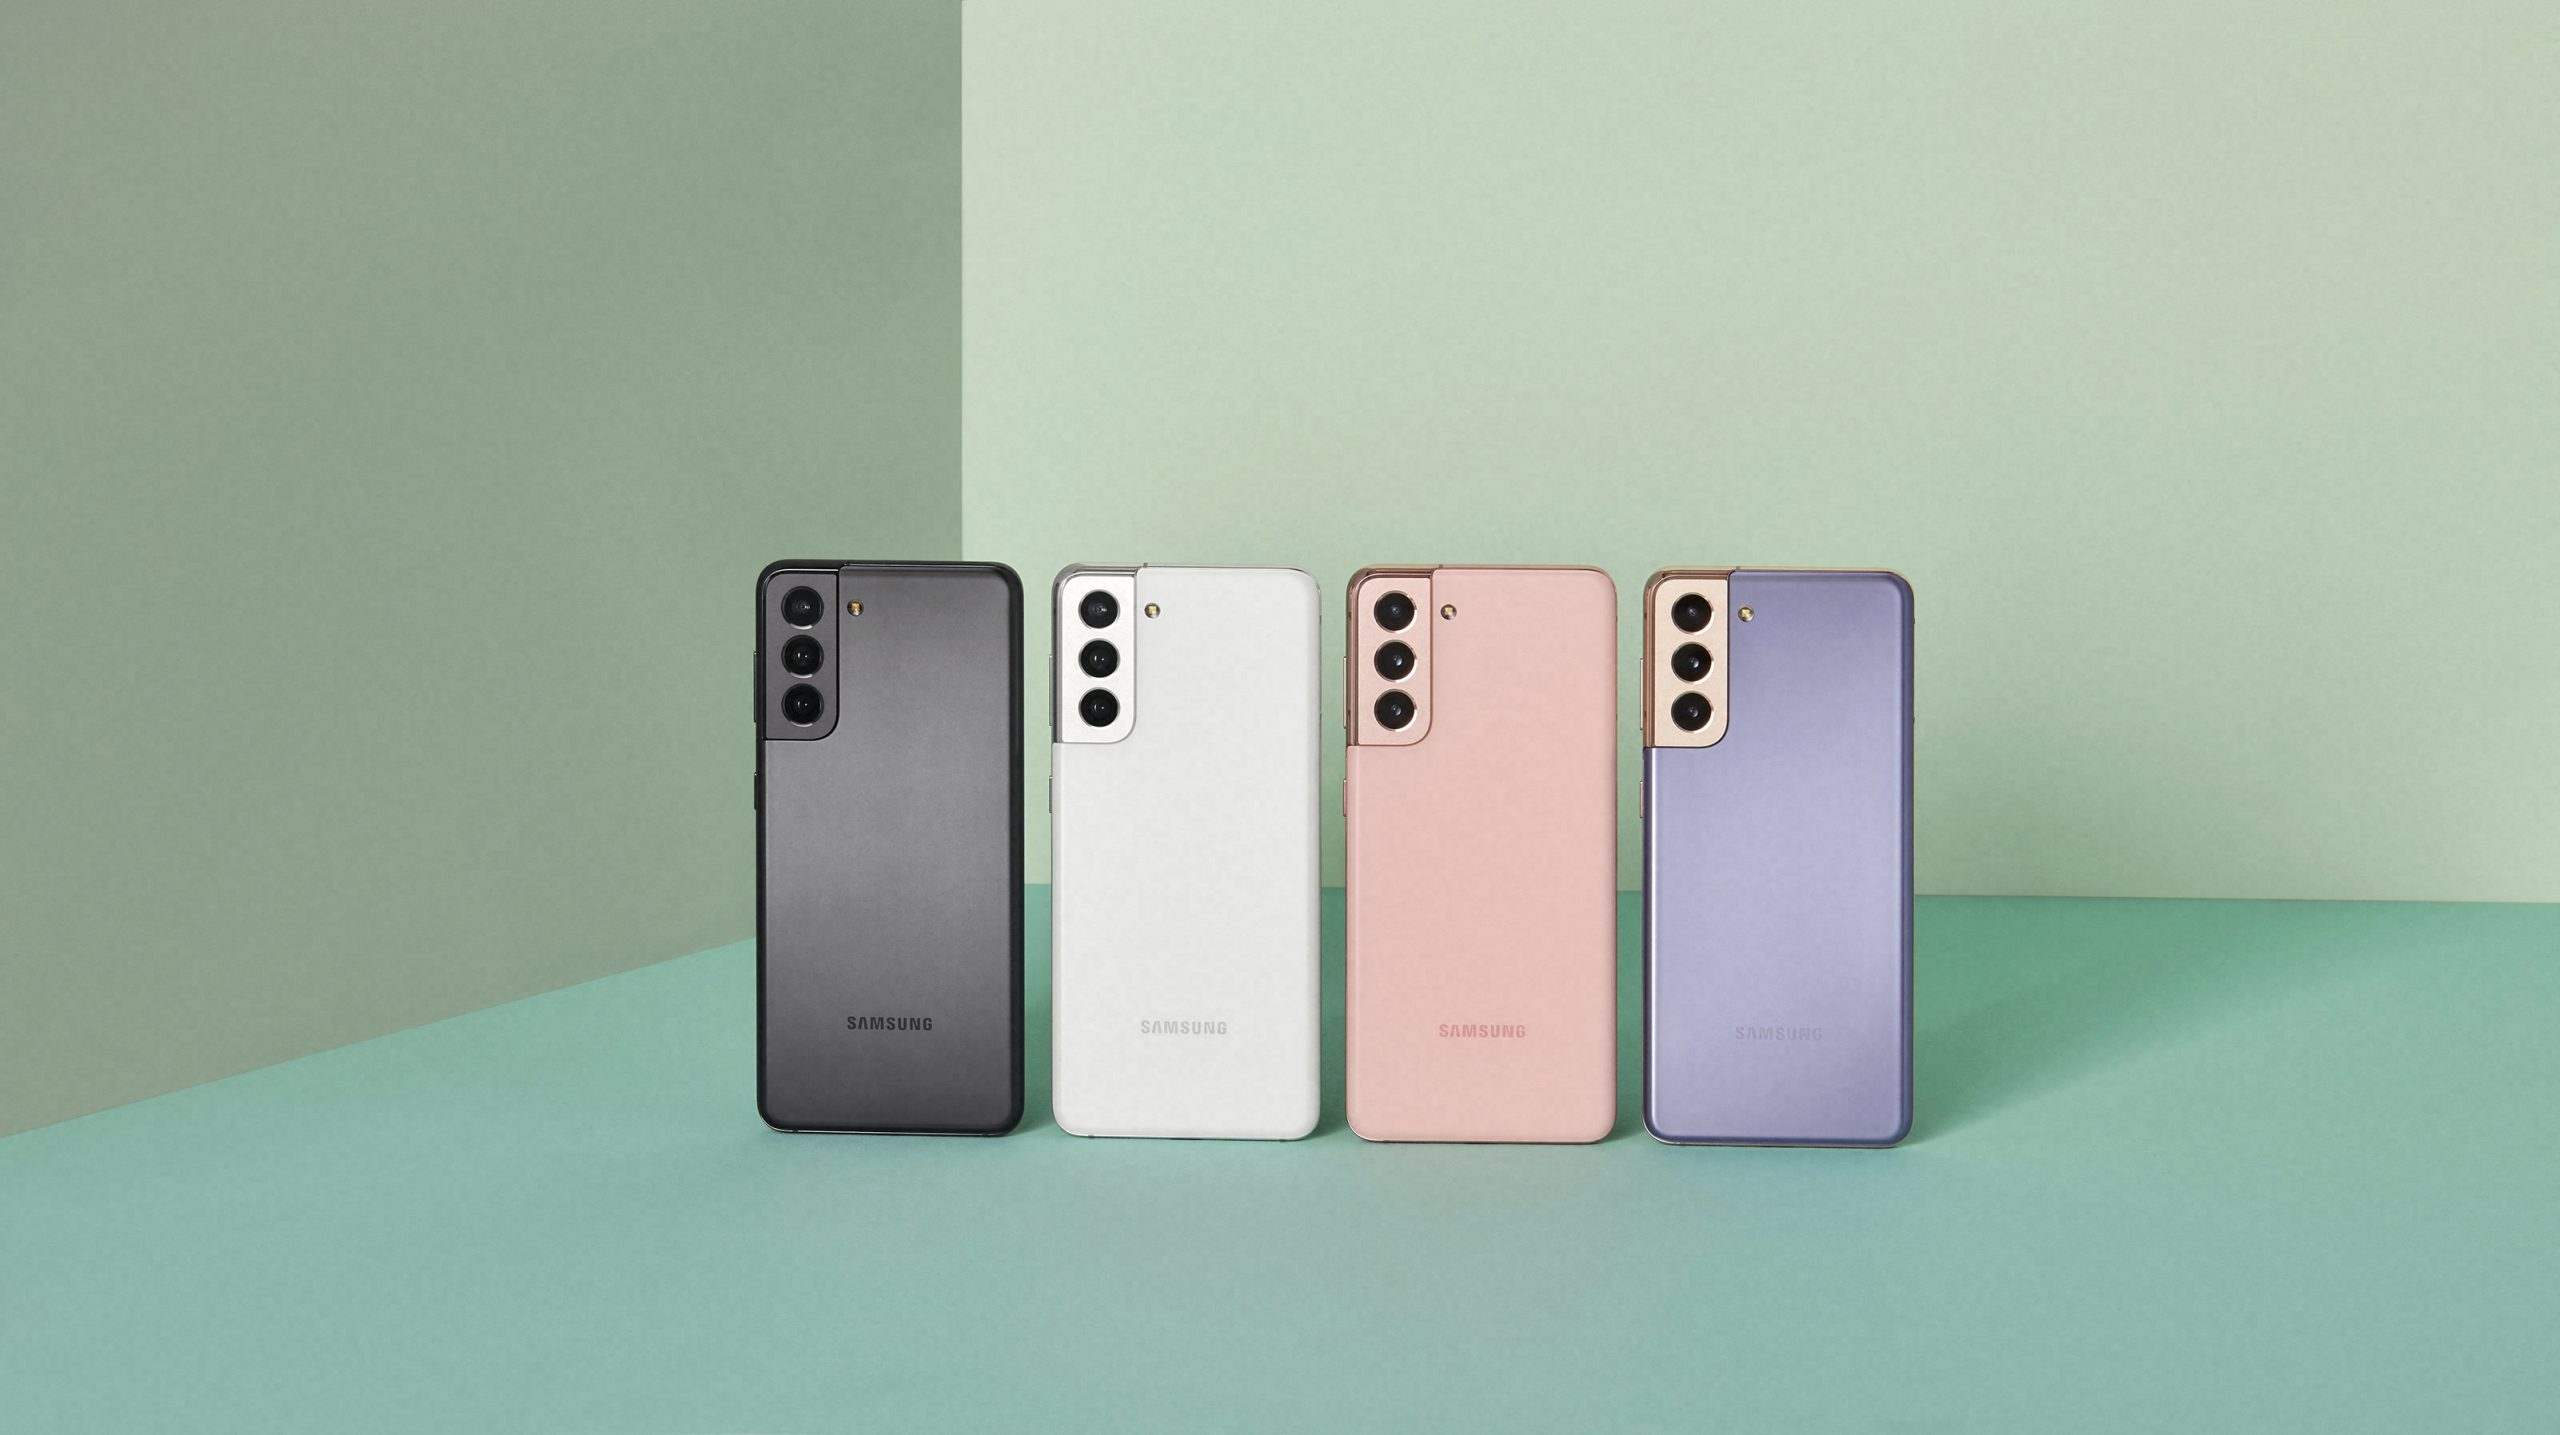 04 galaxys21 violet pink gray white 201230074008 scaled